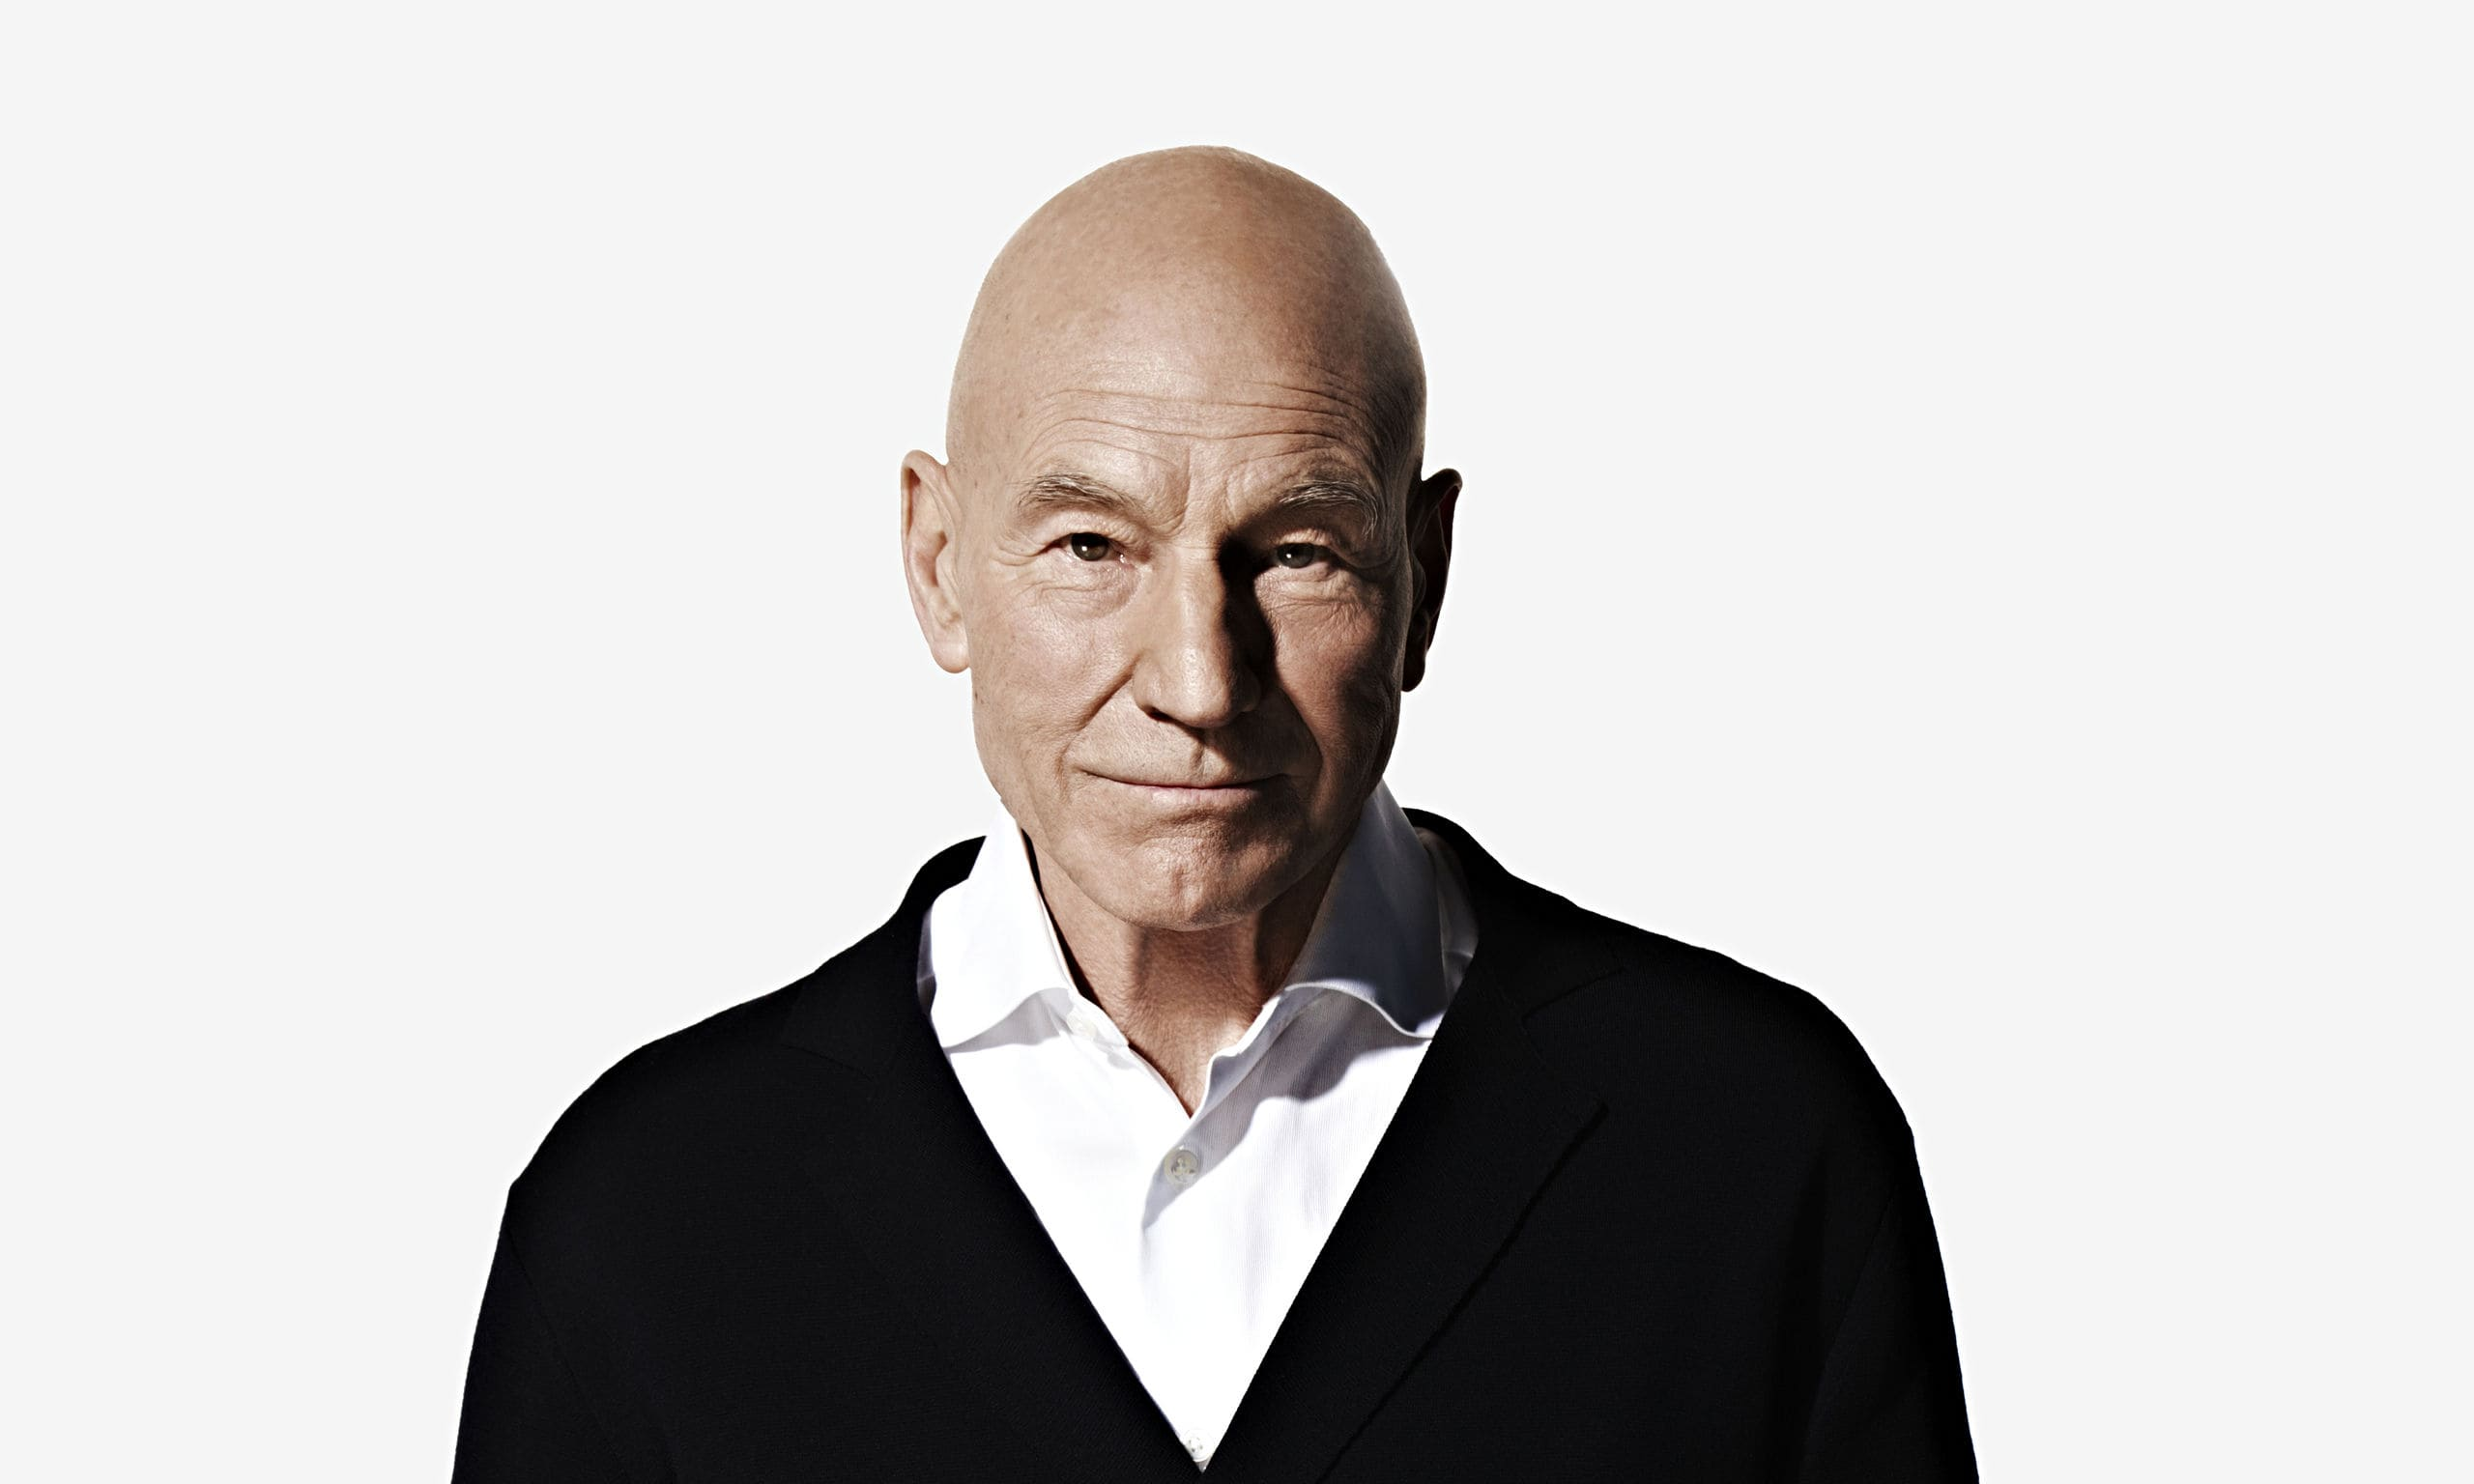 Patrick Stewart Wallpapers hd